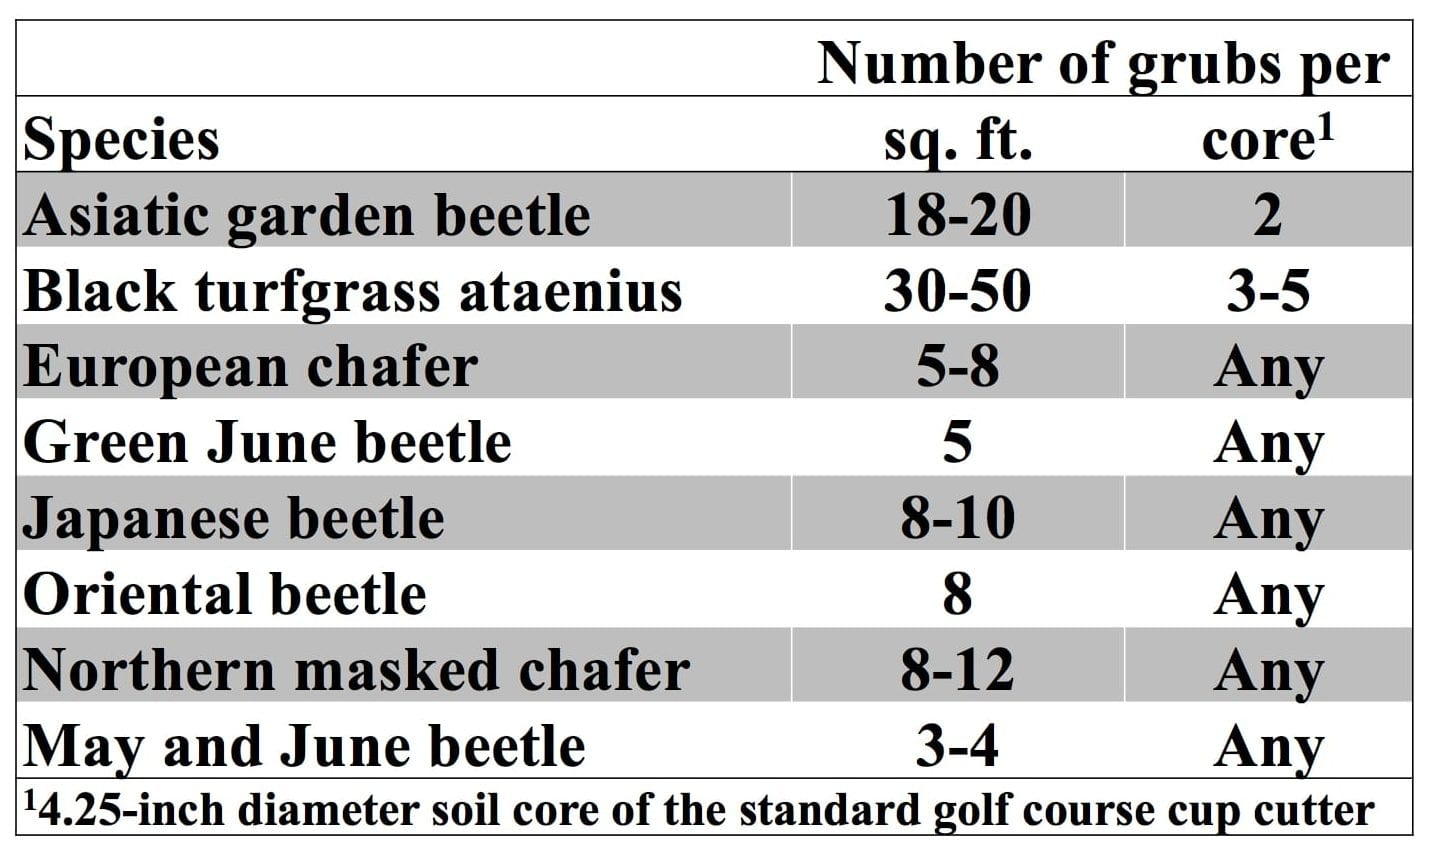 Number of grubs of each species before a treatment is justified